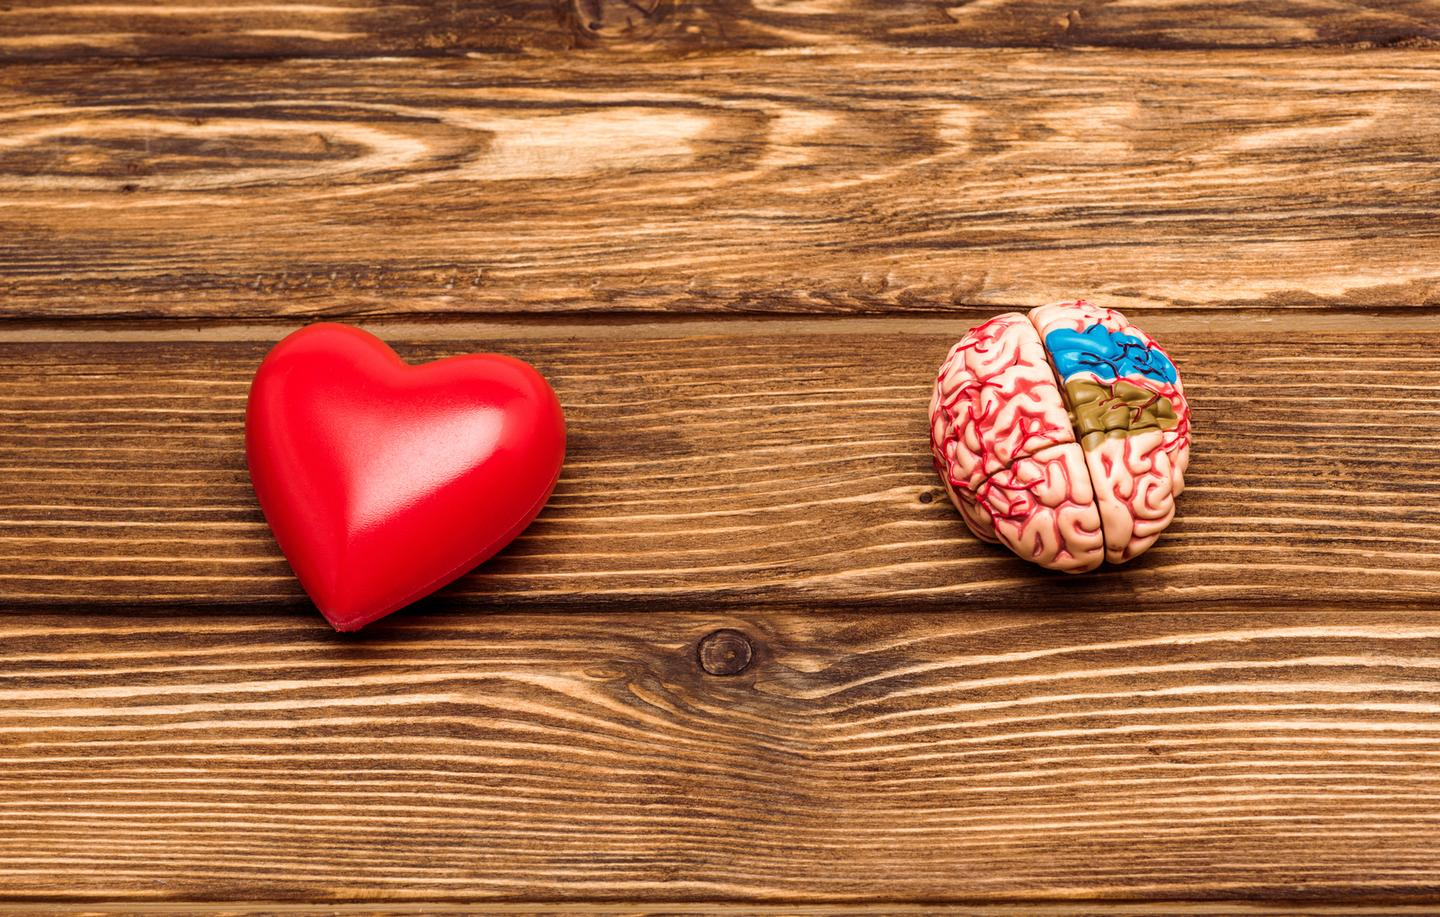 A new study has found healthy subjects in their 50s with subclinical signs of heart disease also displayed impaired metabolism in parts of the brain associated with Alzheimer's disease